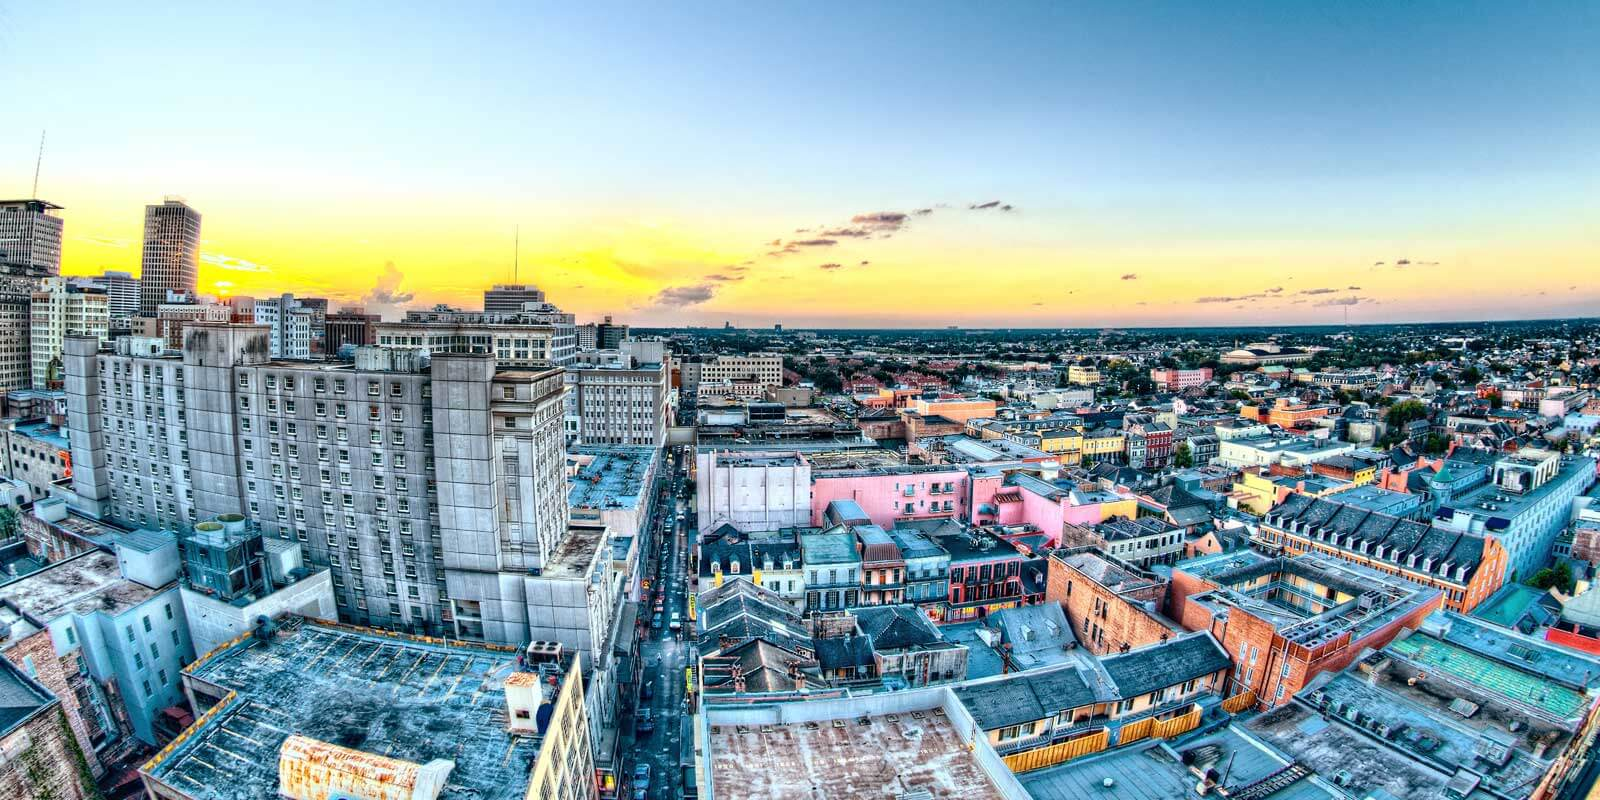 Rooftop views of New Orleans from Hotel Monteleone